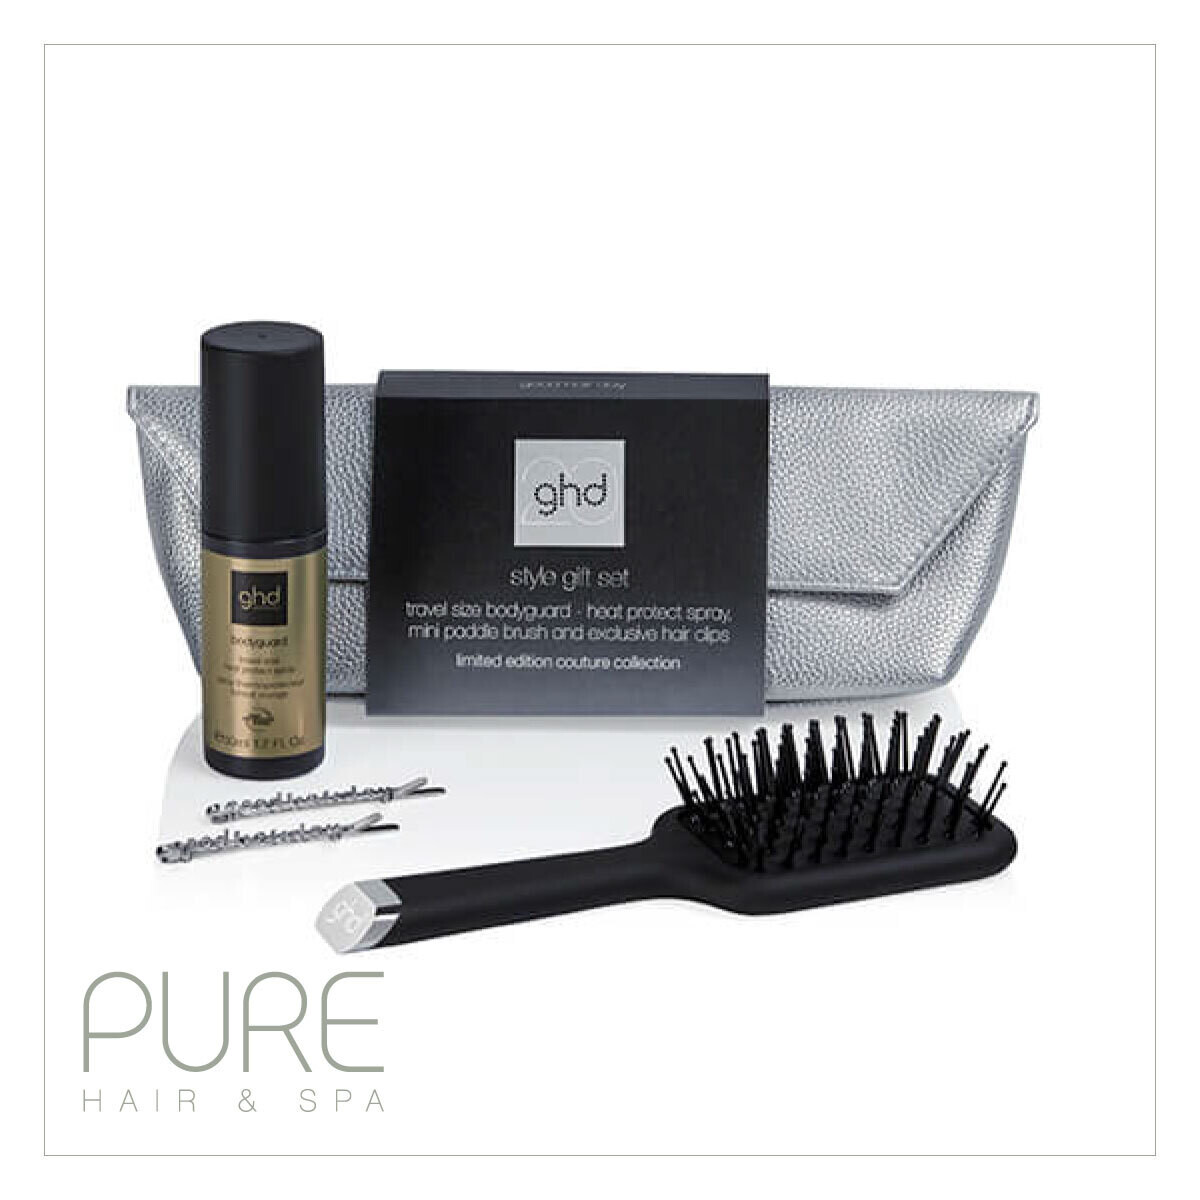 NEW! ghd 20th anniversary style gift set